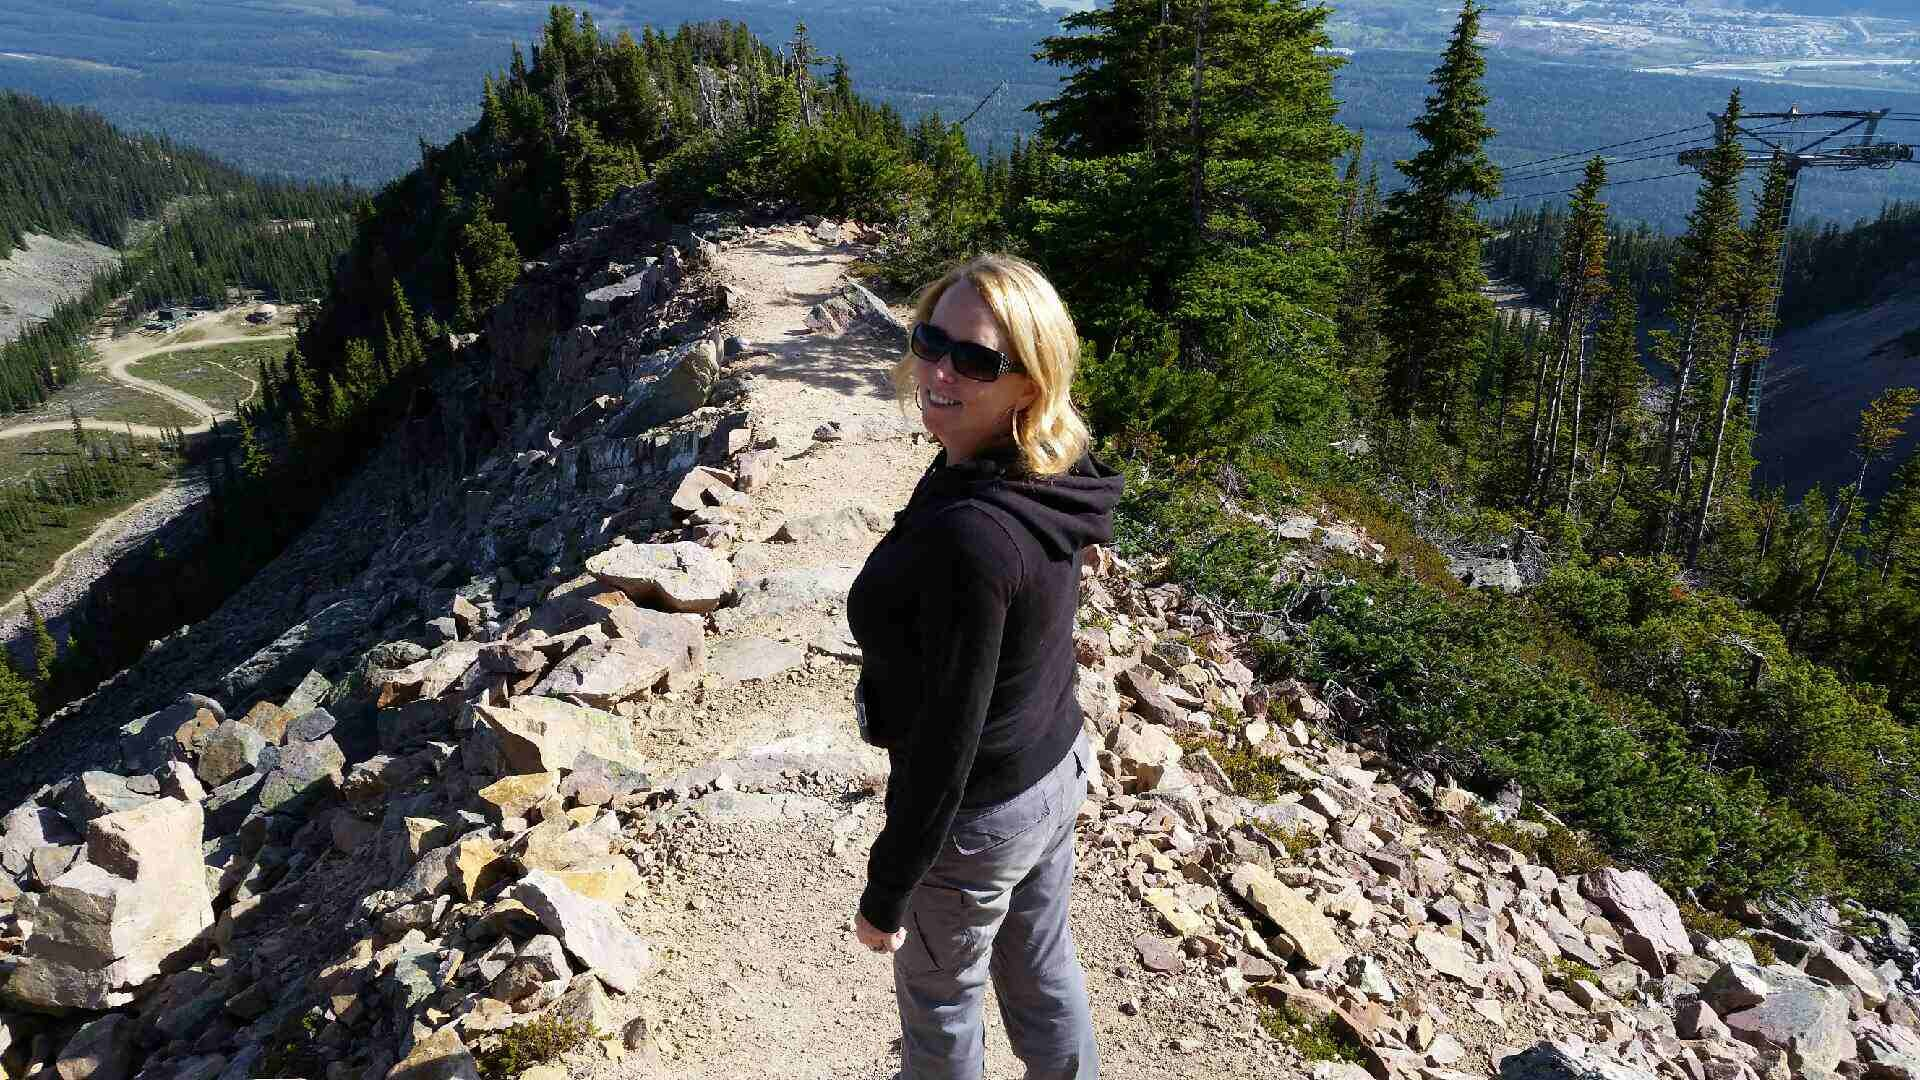 Super Agent Jennifer at 'Kicking Horse' in Golden, BC